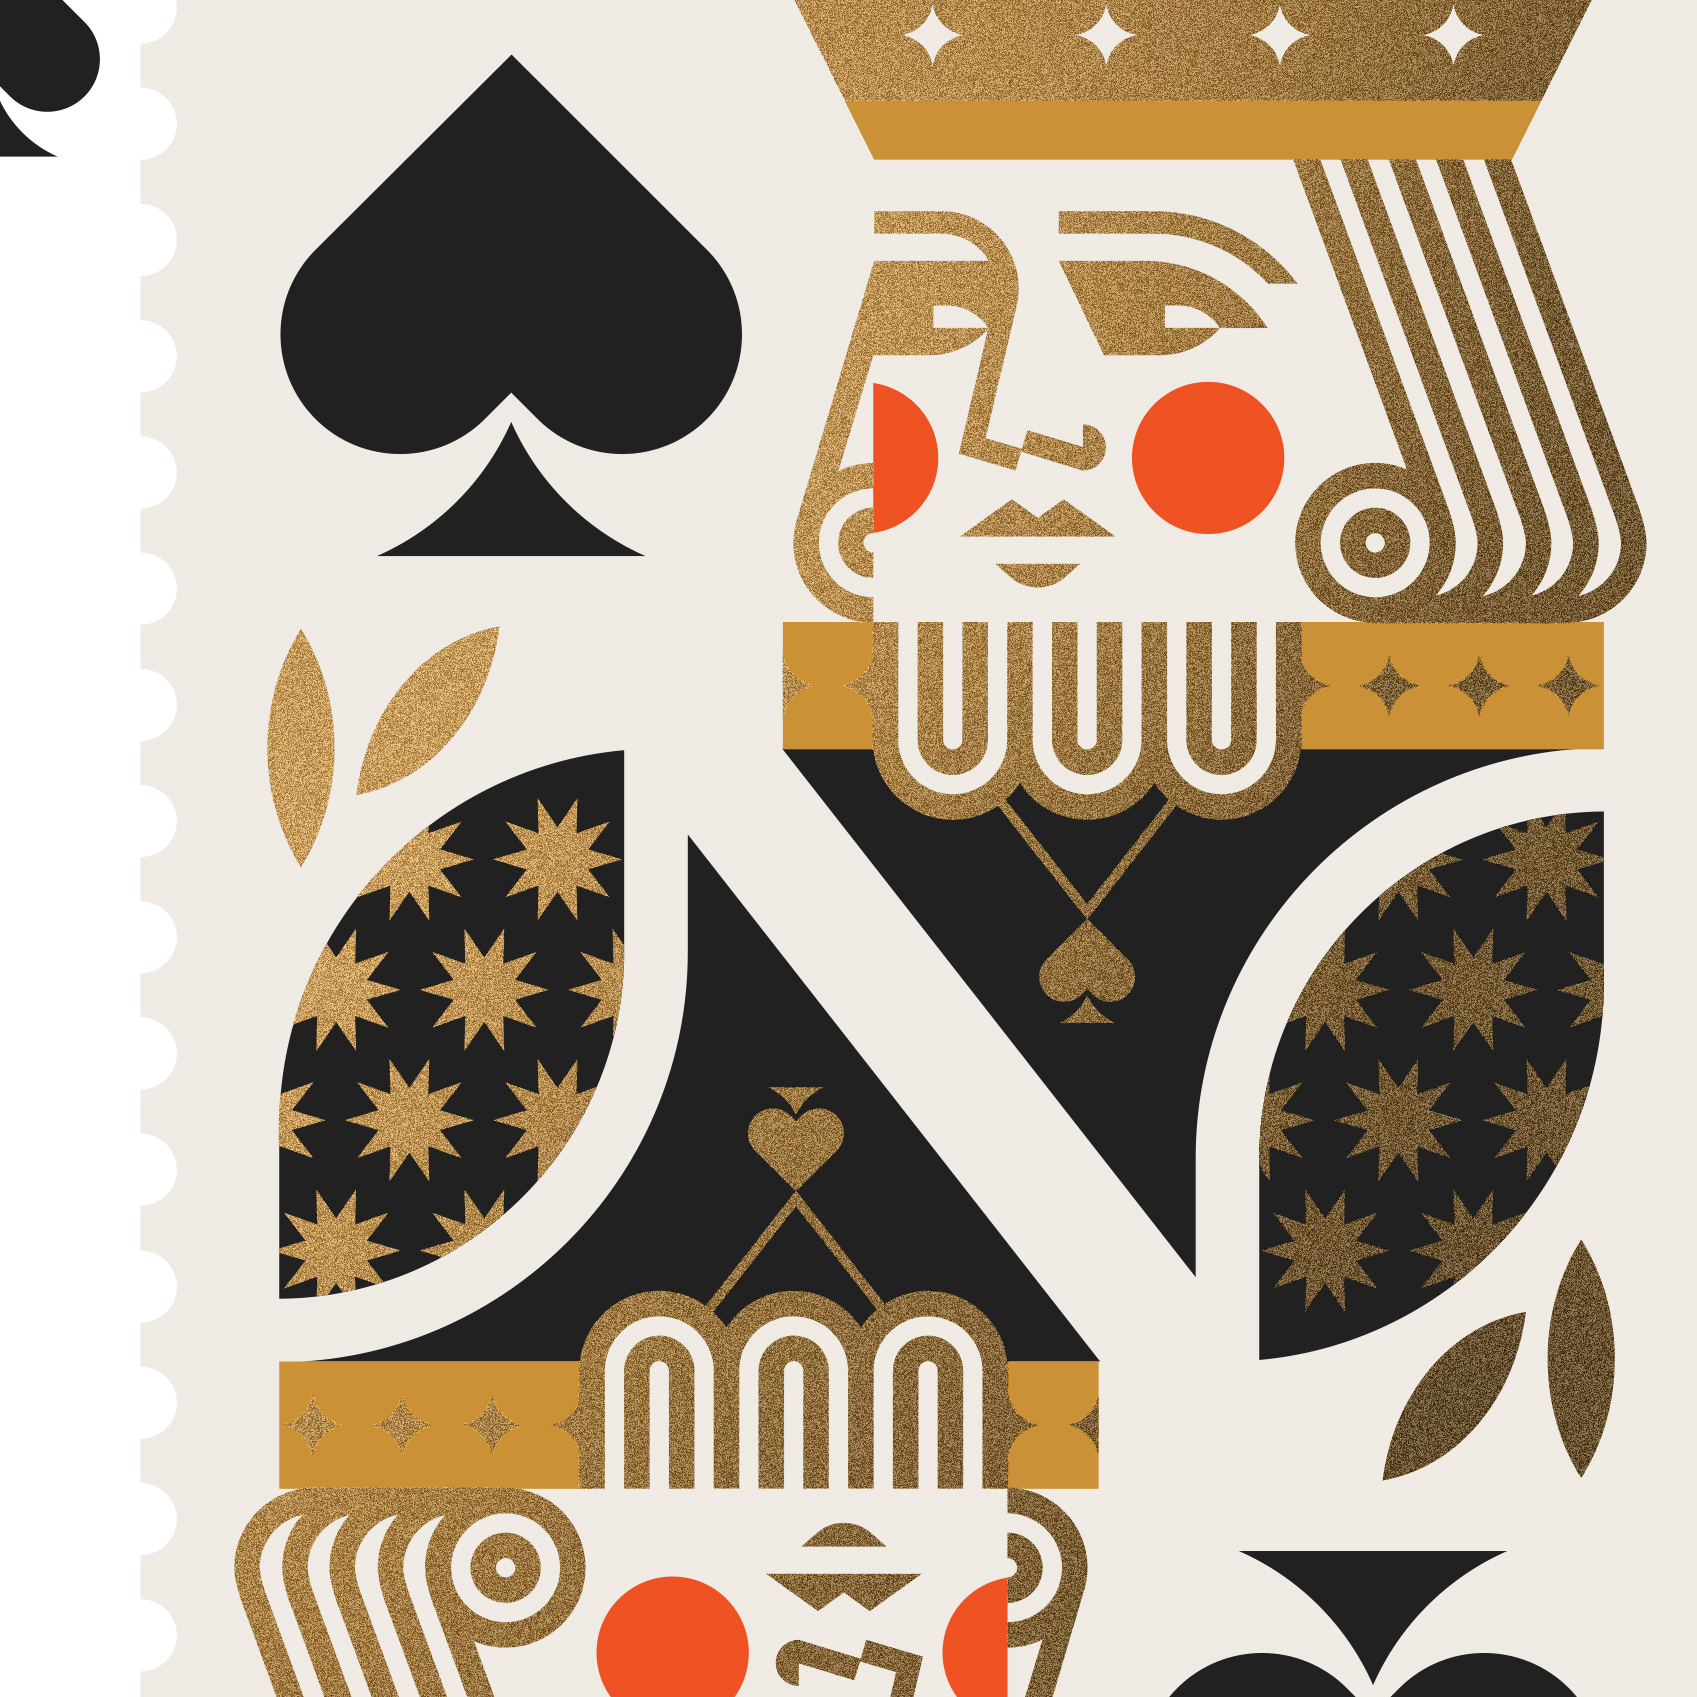 The Art of Magic King of Spades